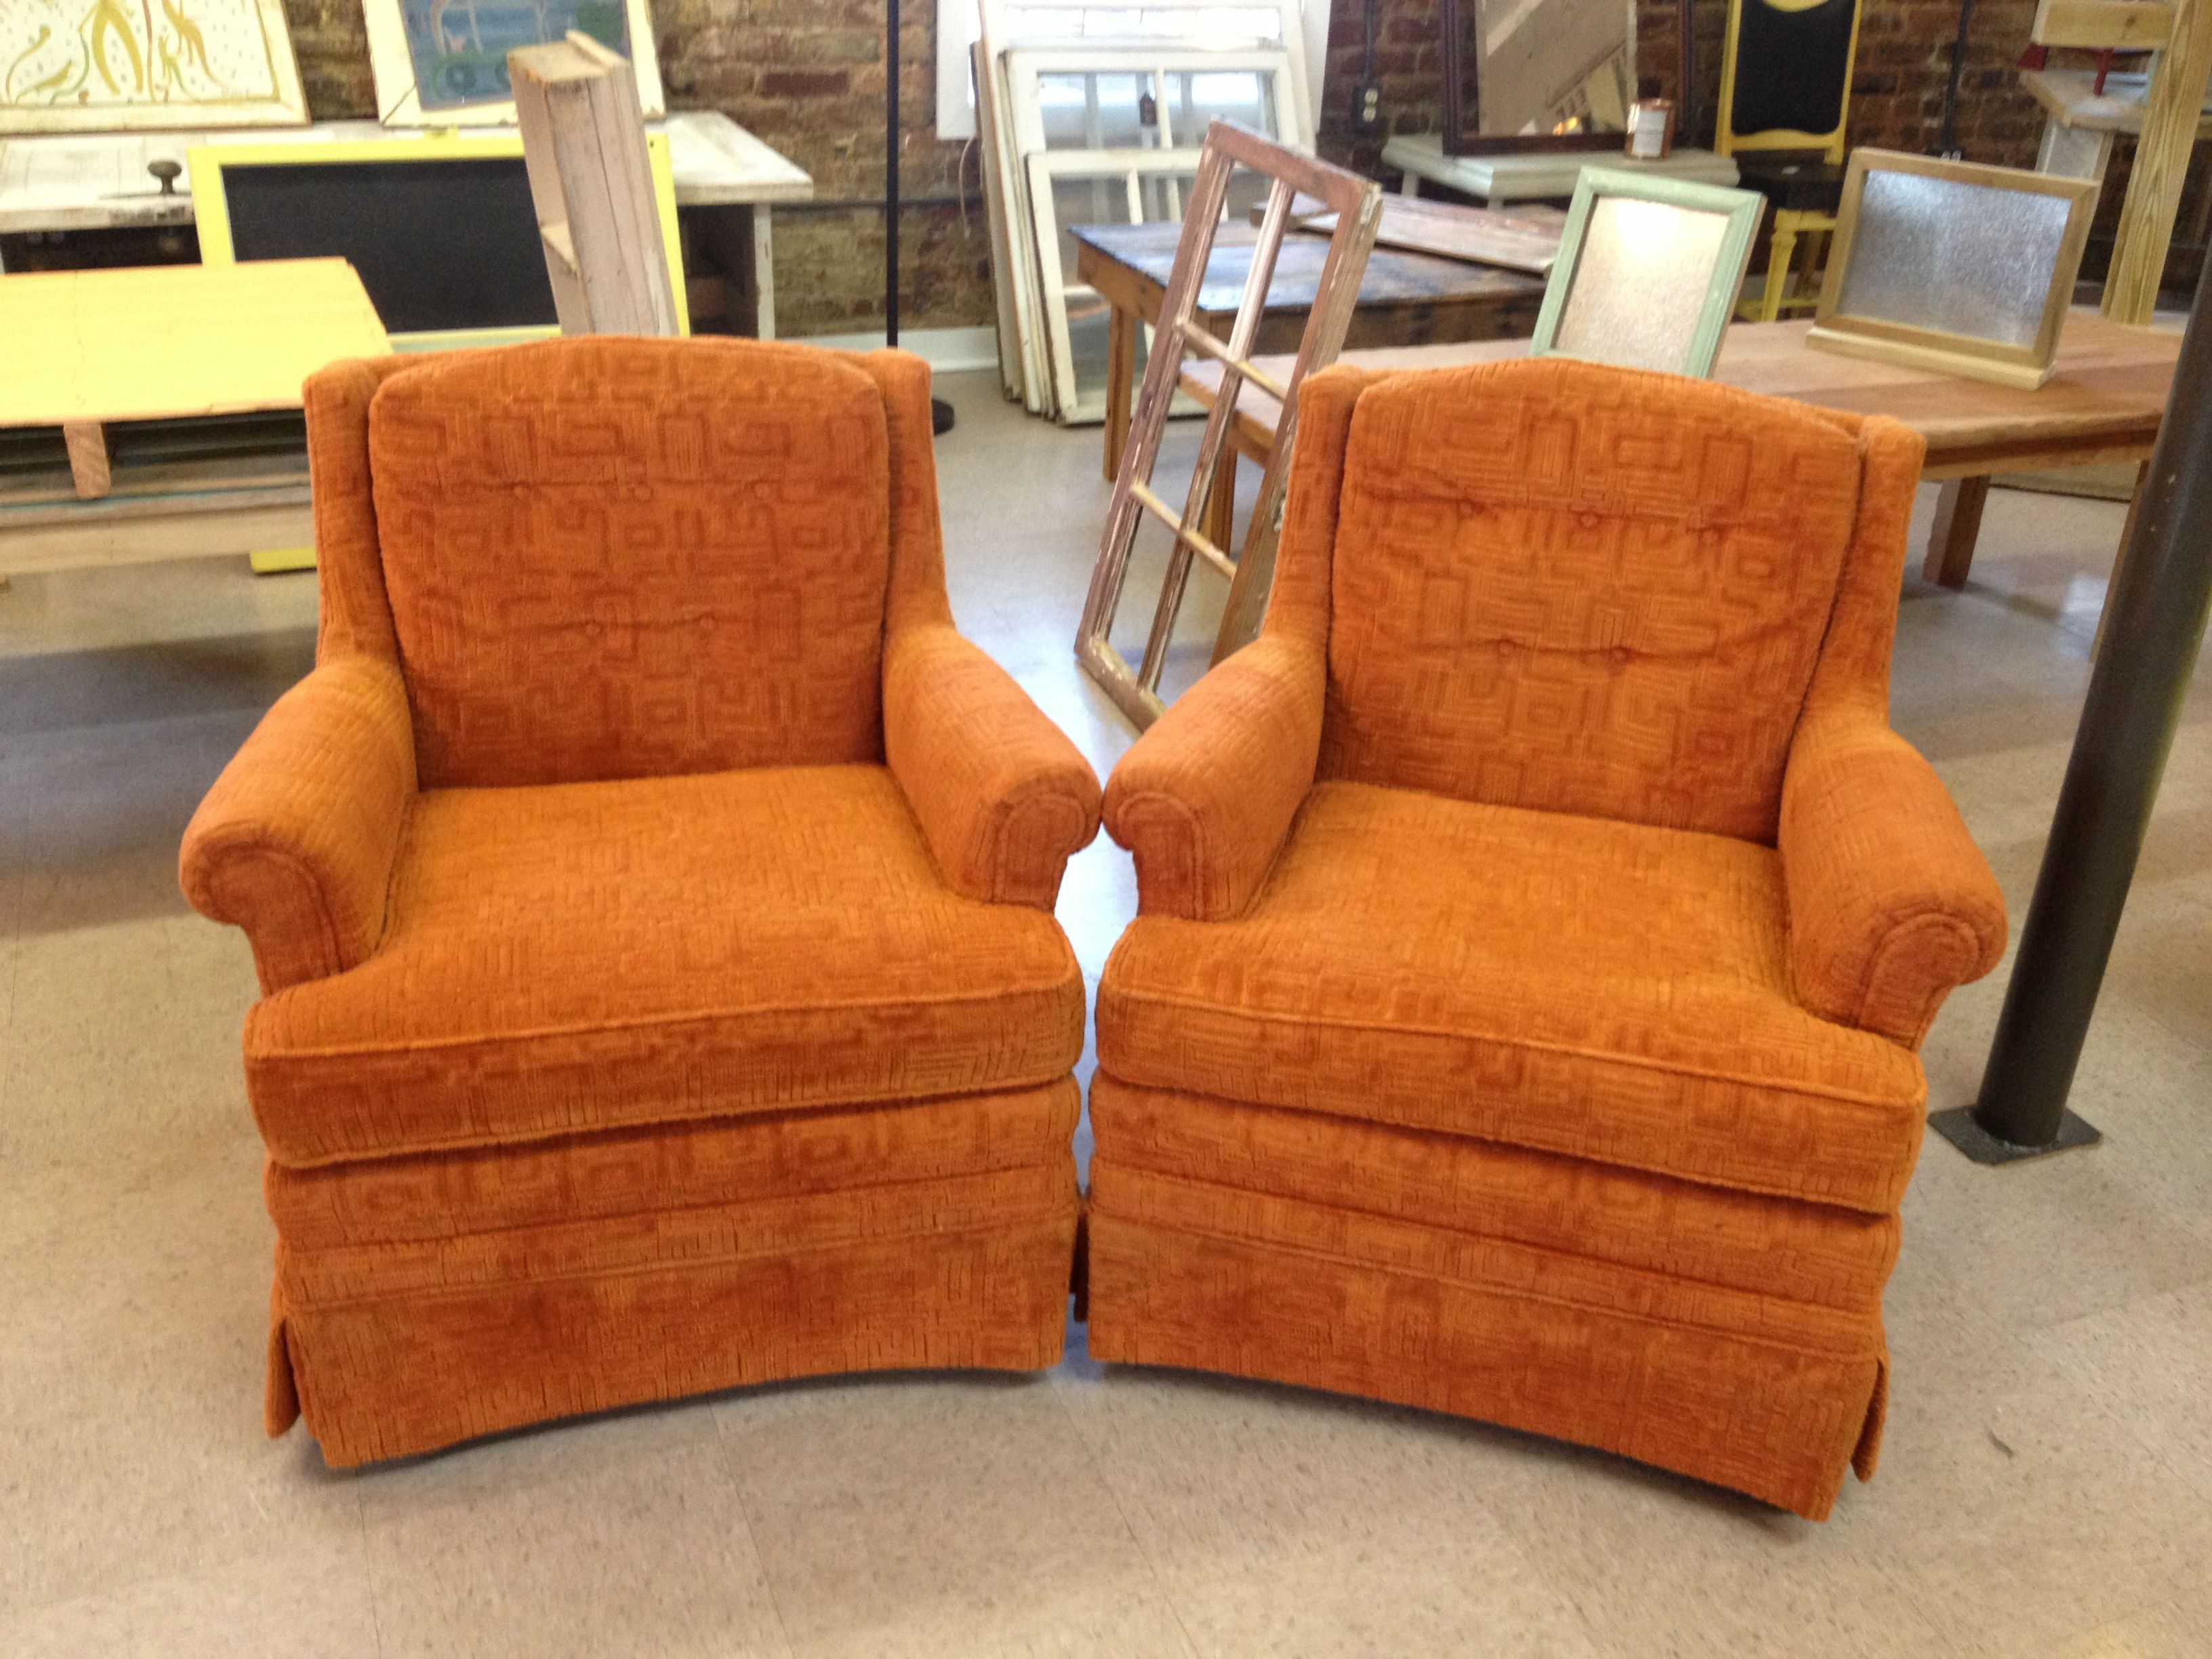 These are Vintage 60's Mid Century Modern Velvet Wingback